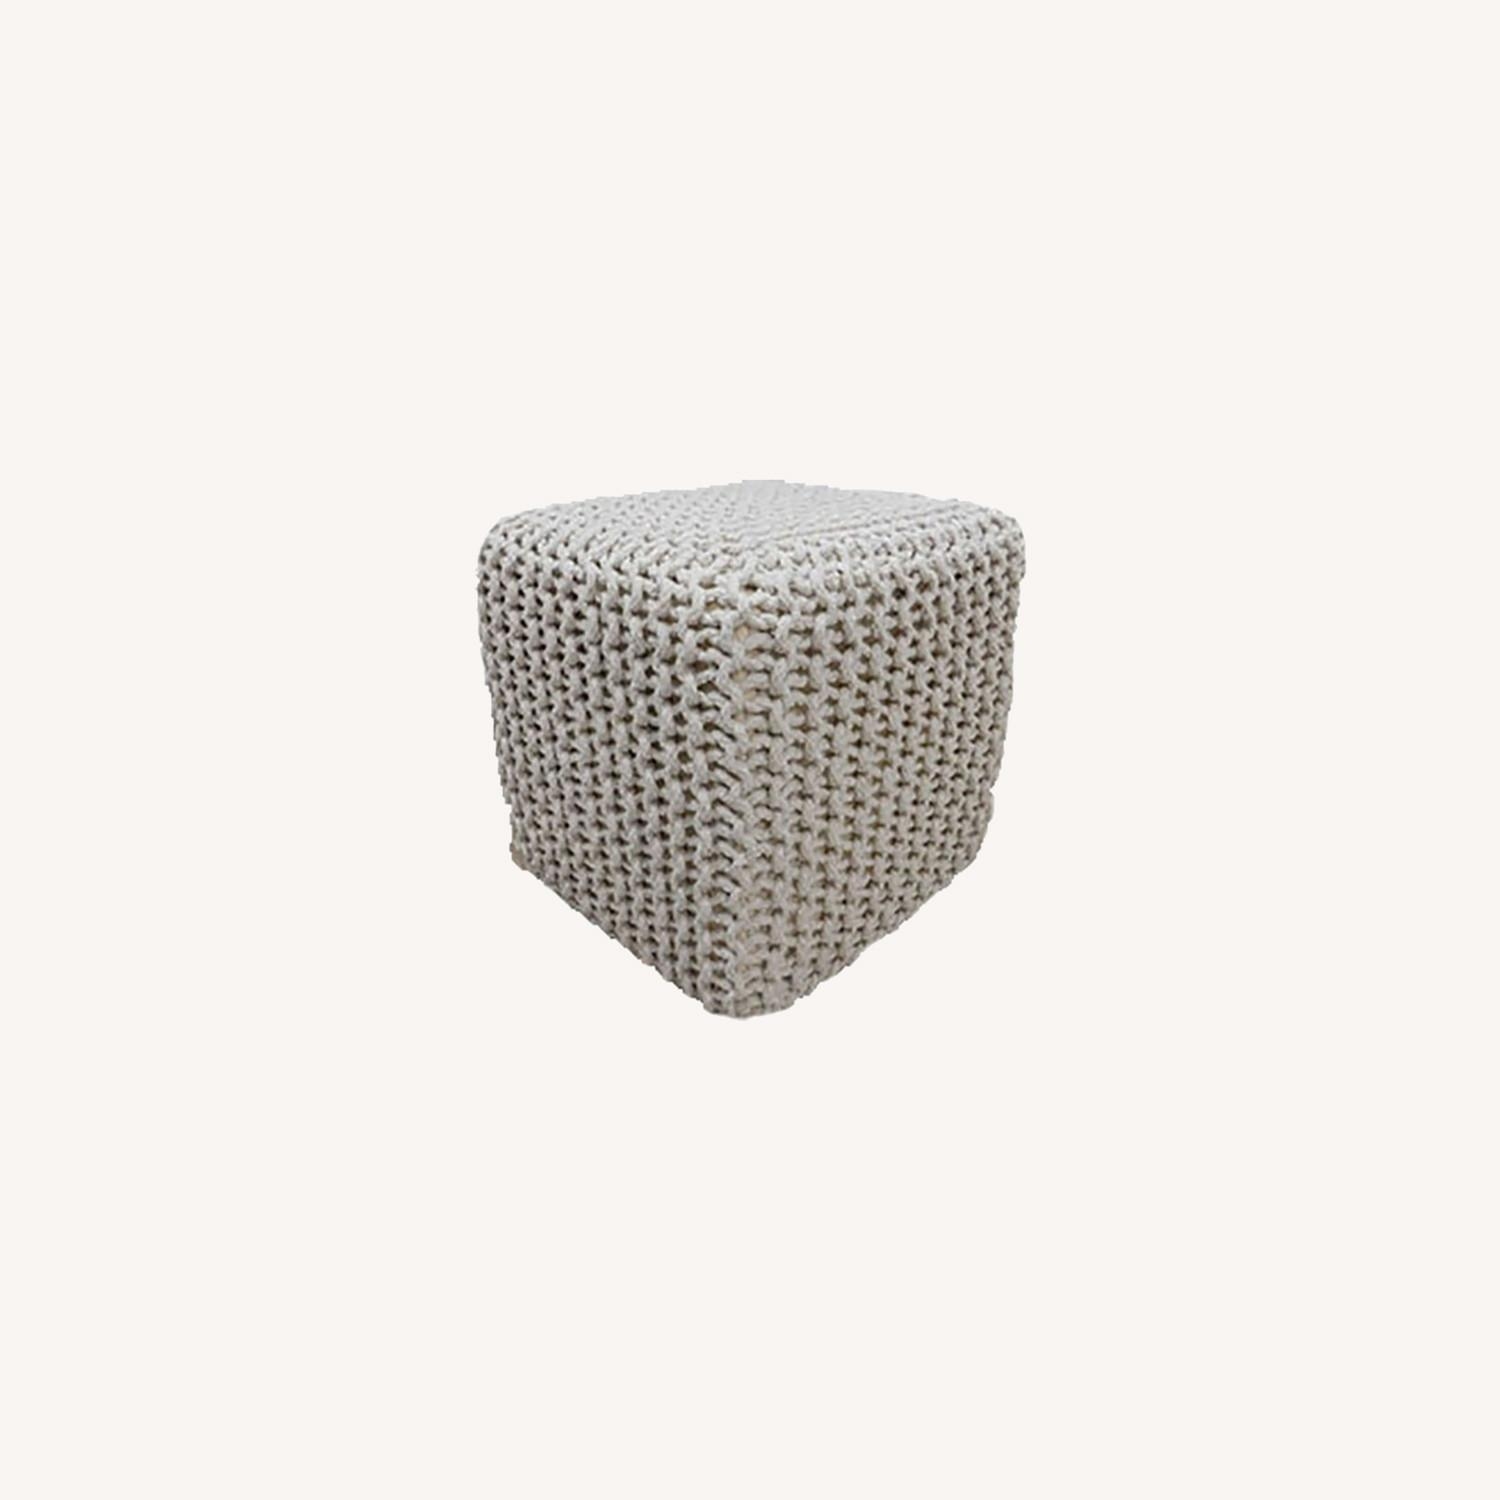 Chicklet Cotton Knitted Pouf 15in Ottoman Ottoman - image-0